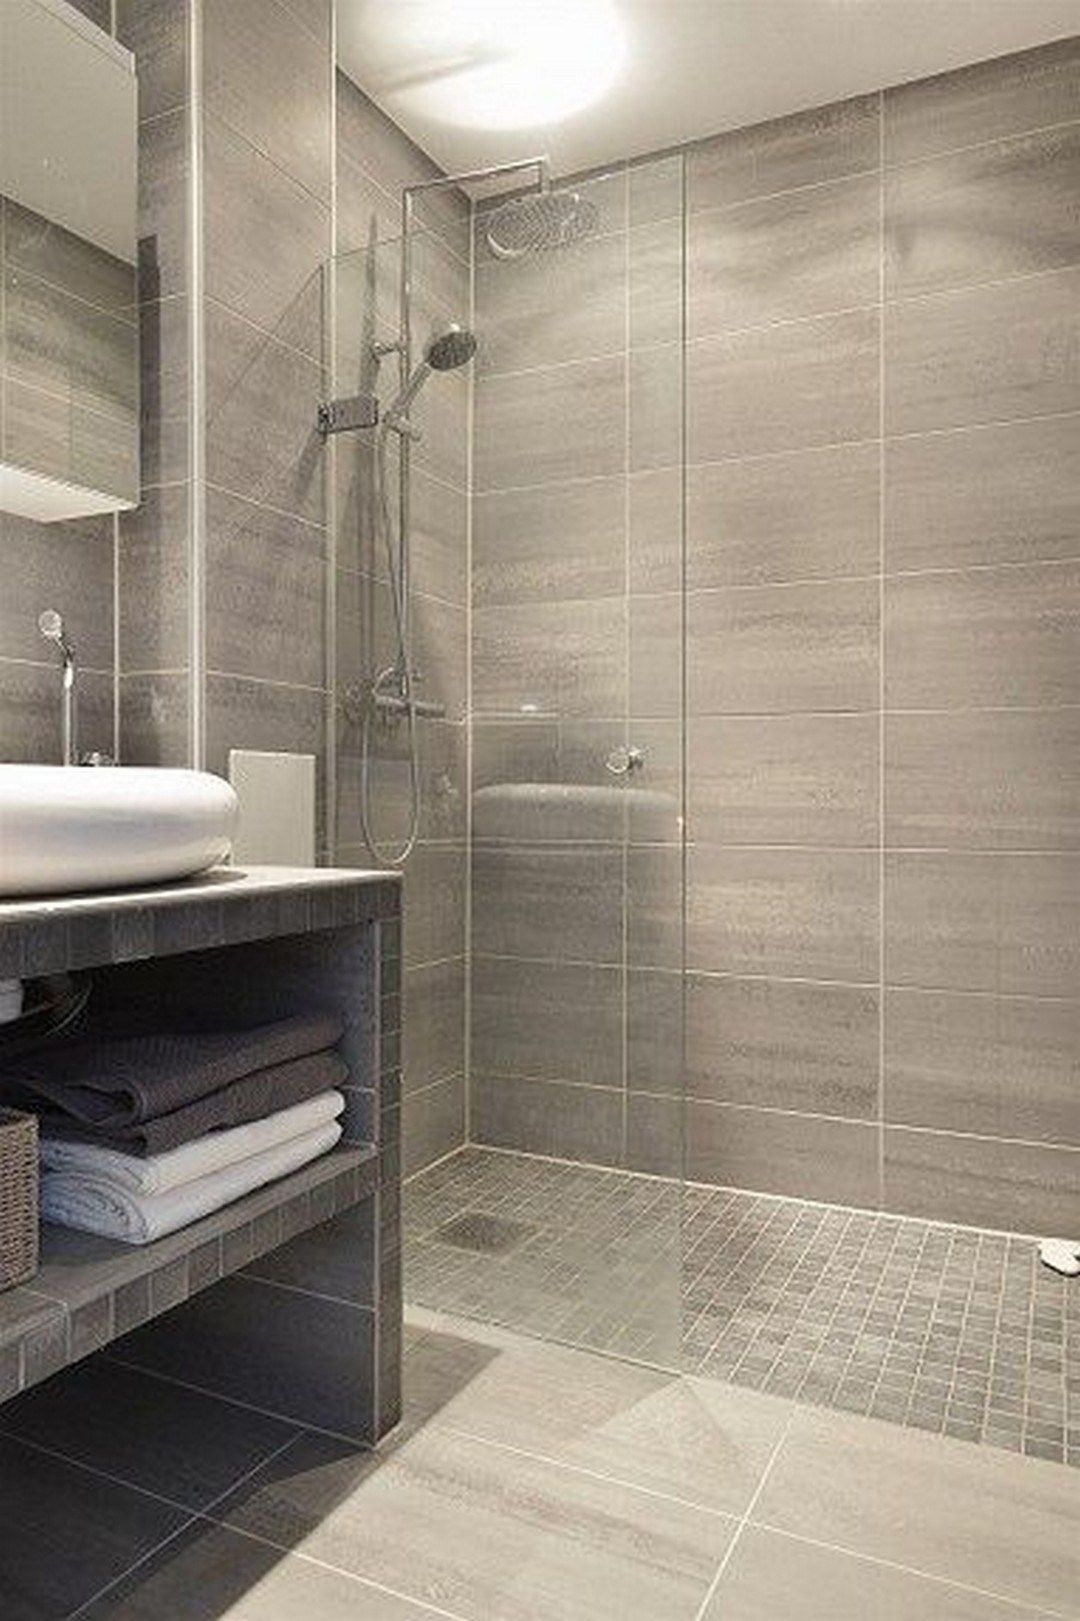 New Design Bathrooms 99 New Trends Bathroom Tile Design Inspiration 2017 8  House